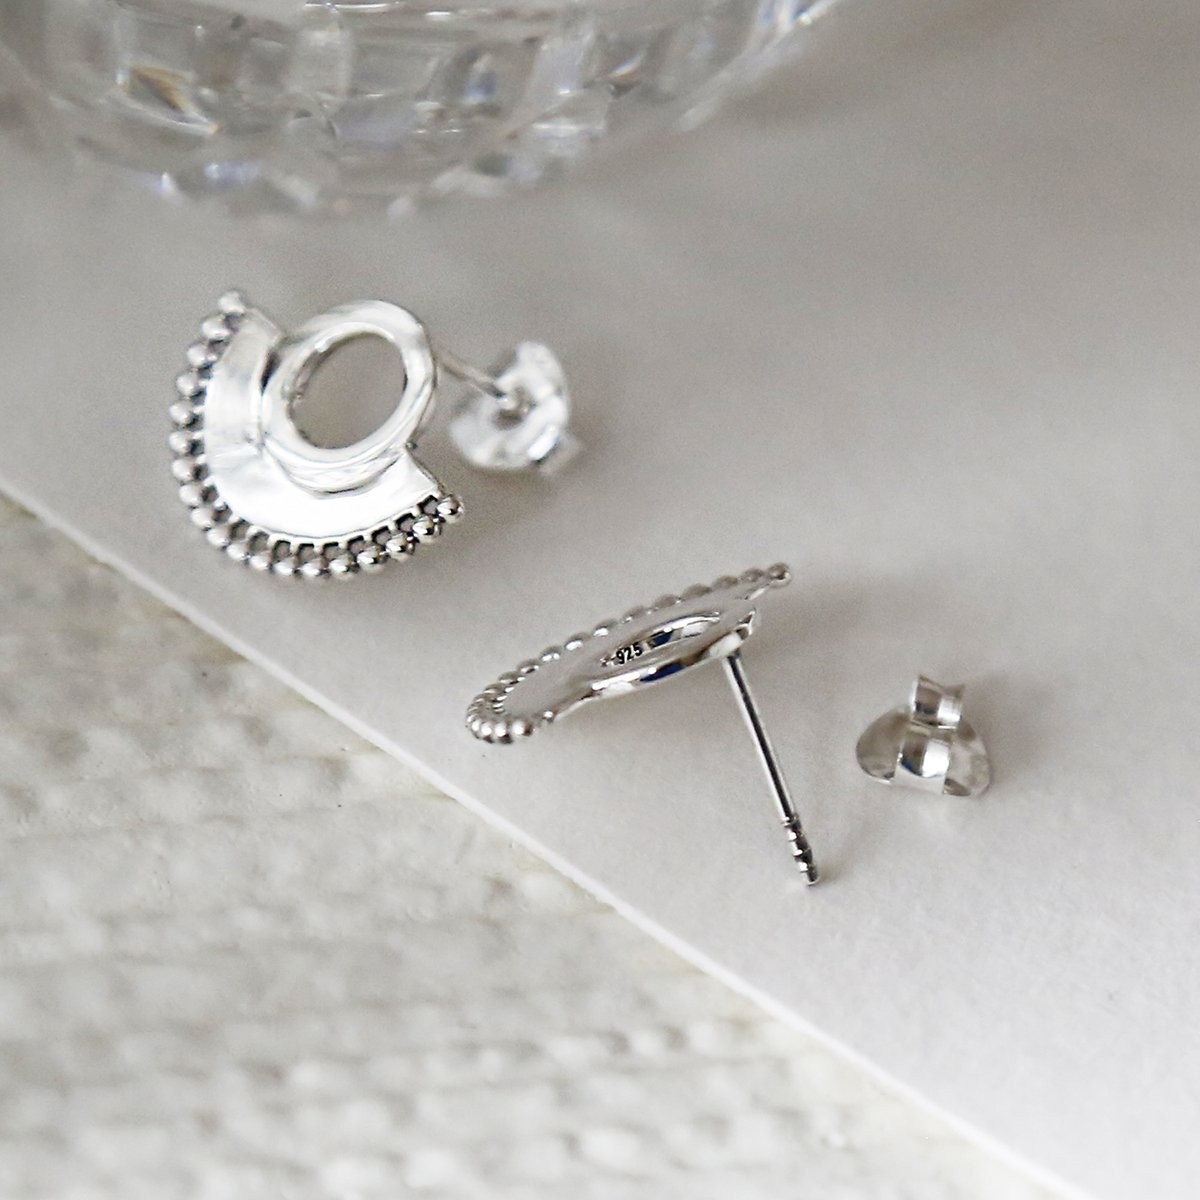 Sterling silver art deco sunburst stud earrings close up on great background showing front and top